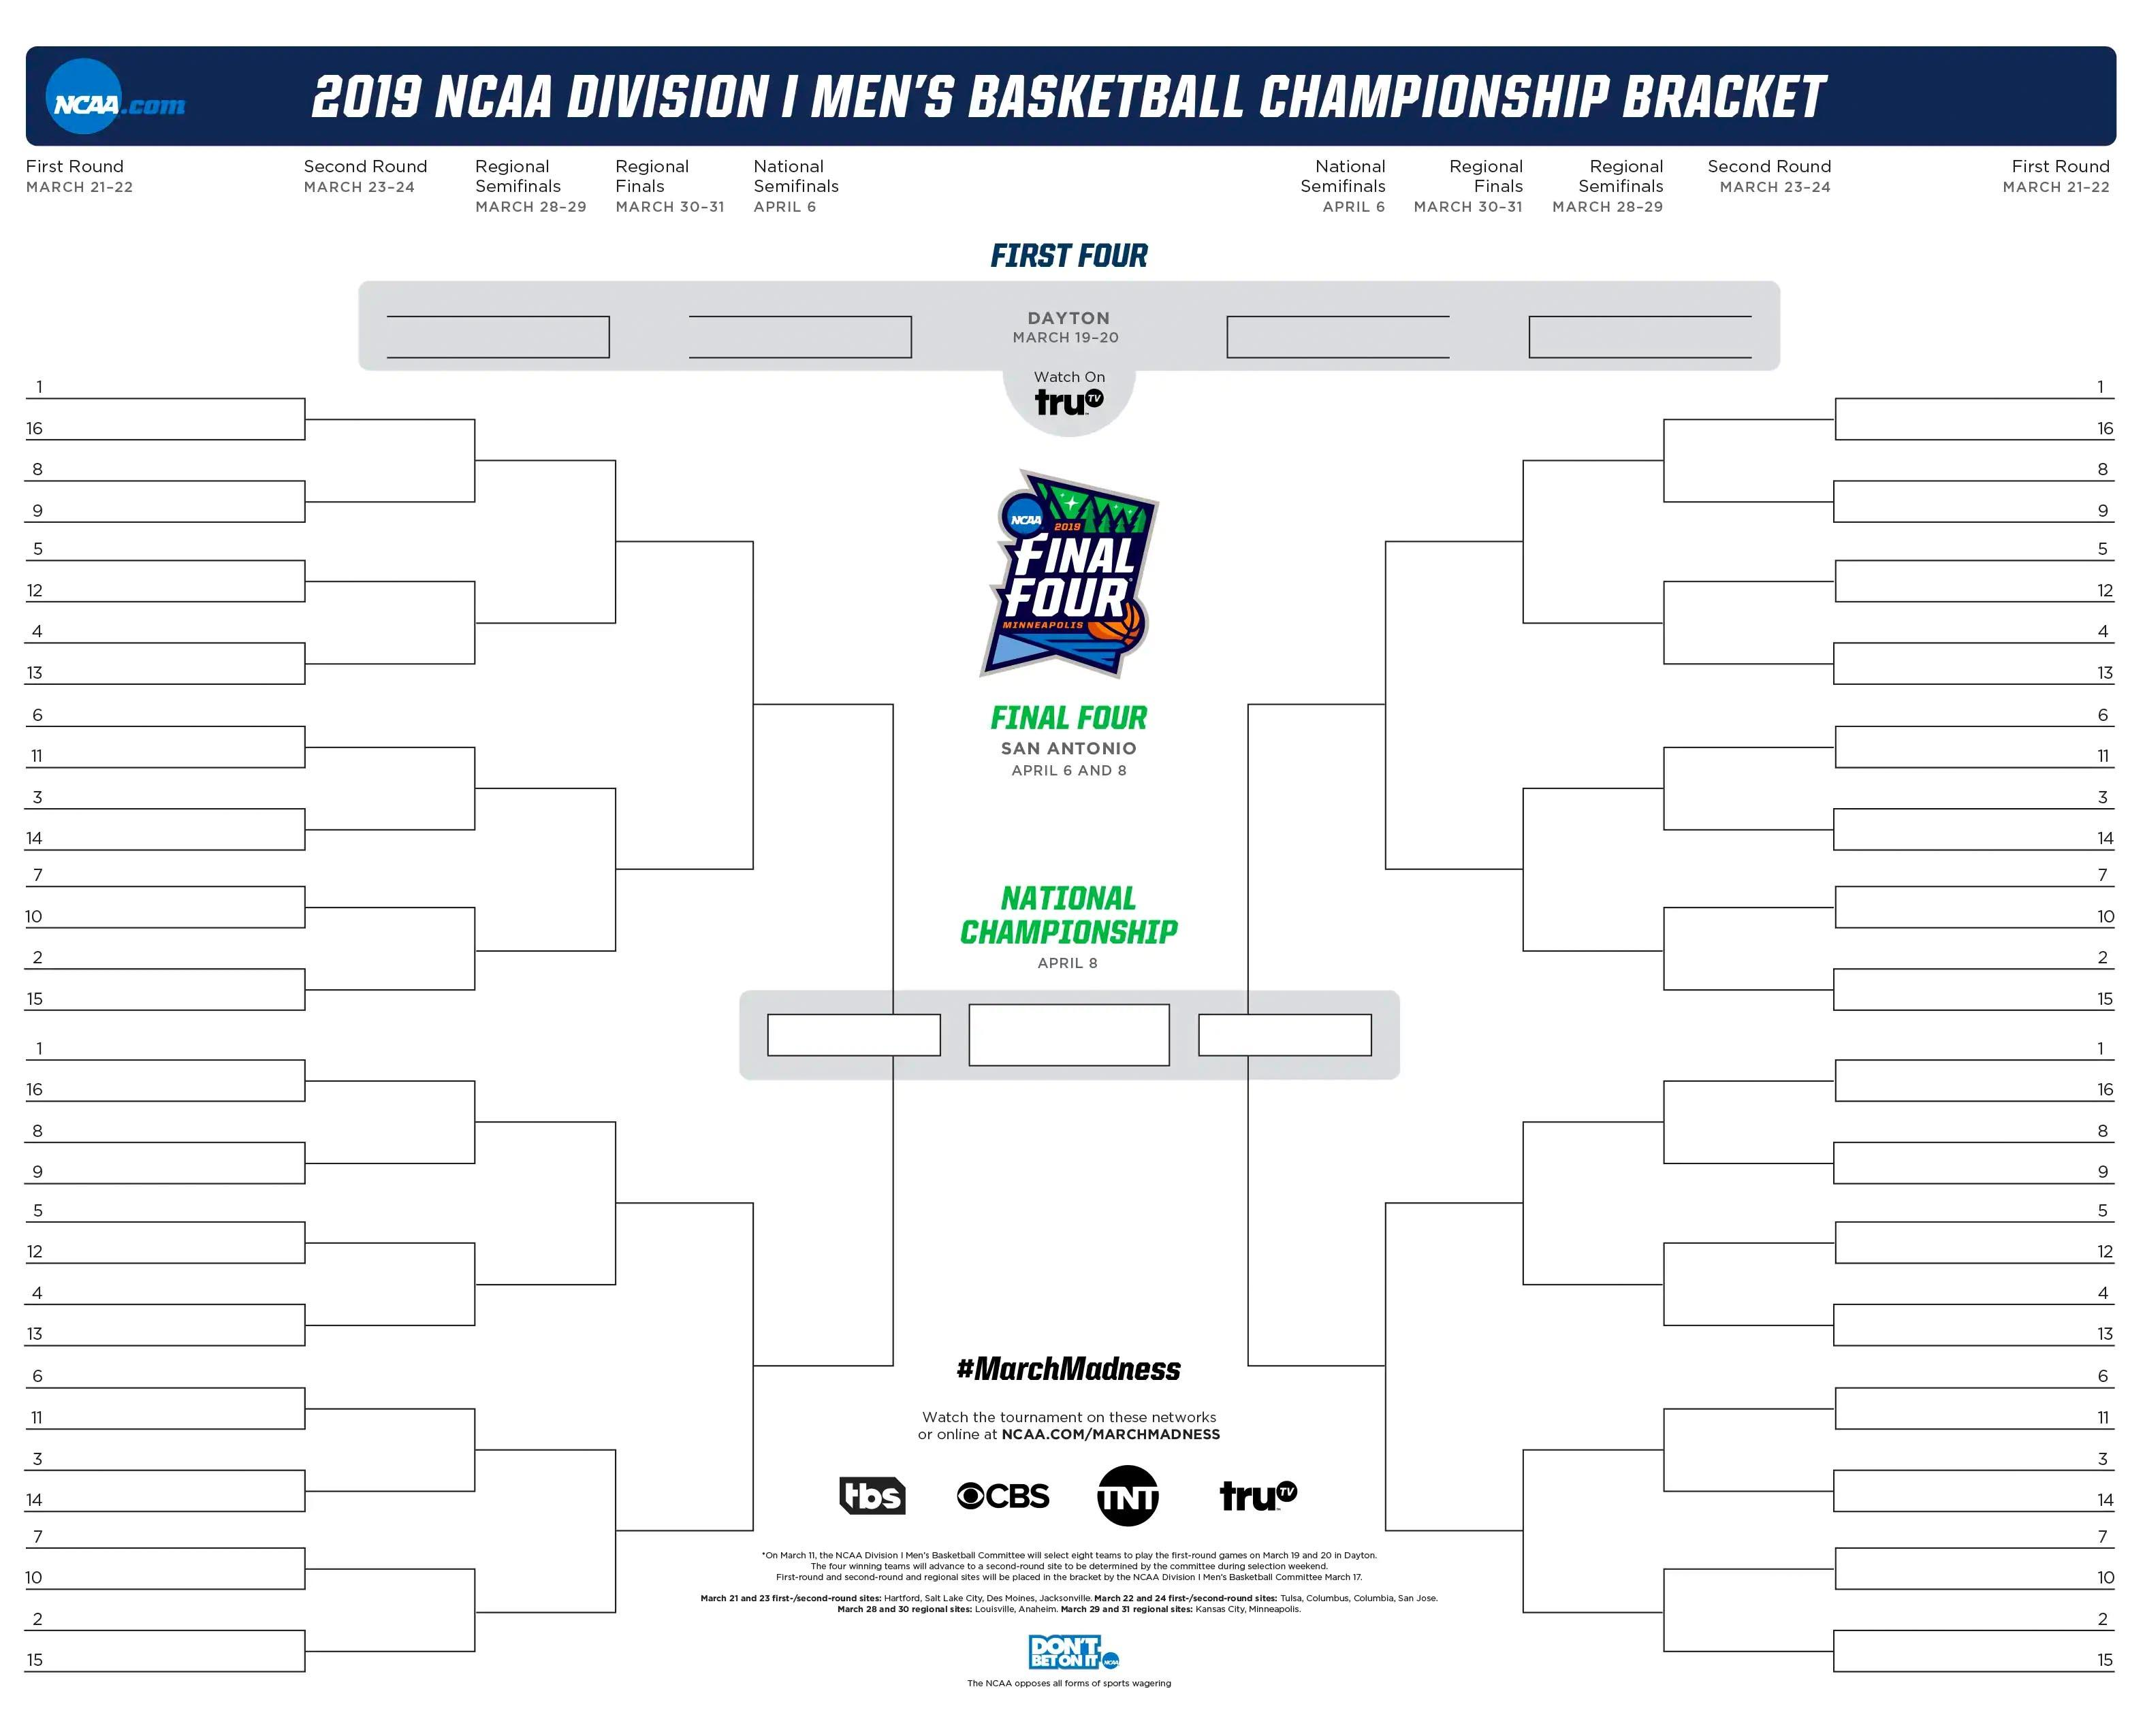 A perfect NCAA bracket: The absurd odds of the March Madness dream